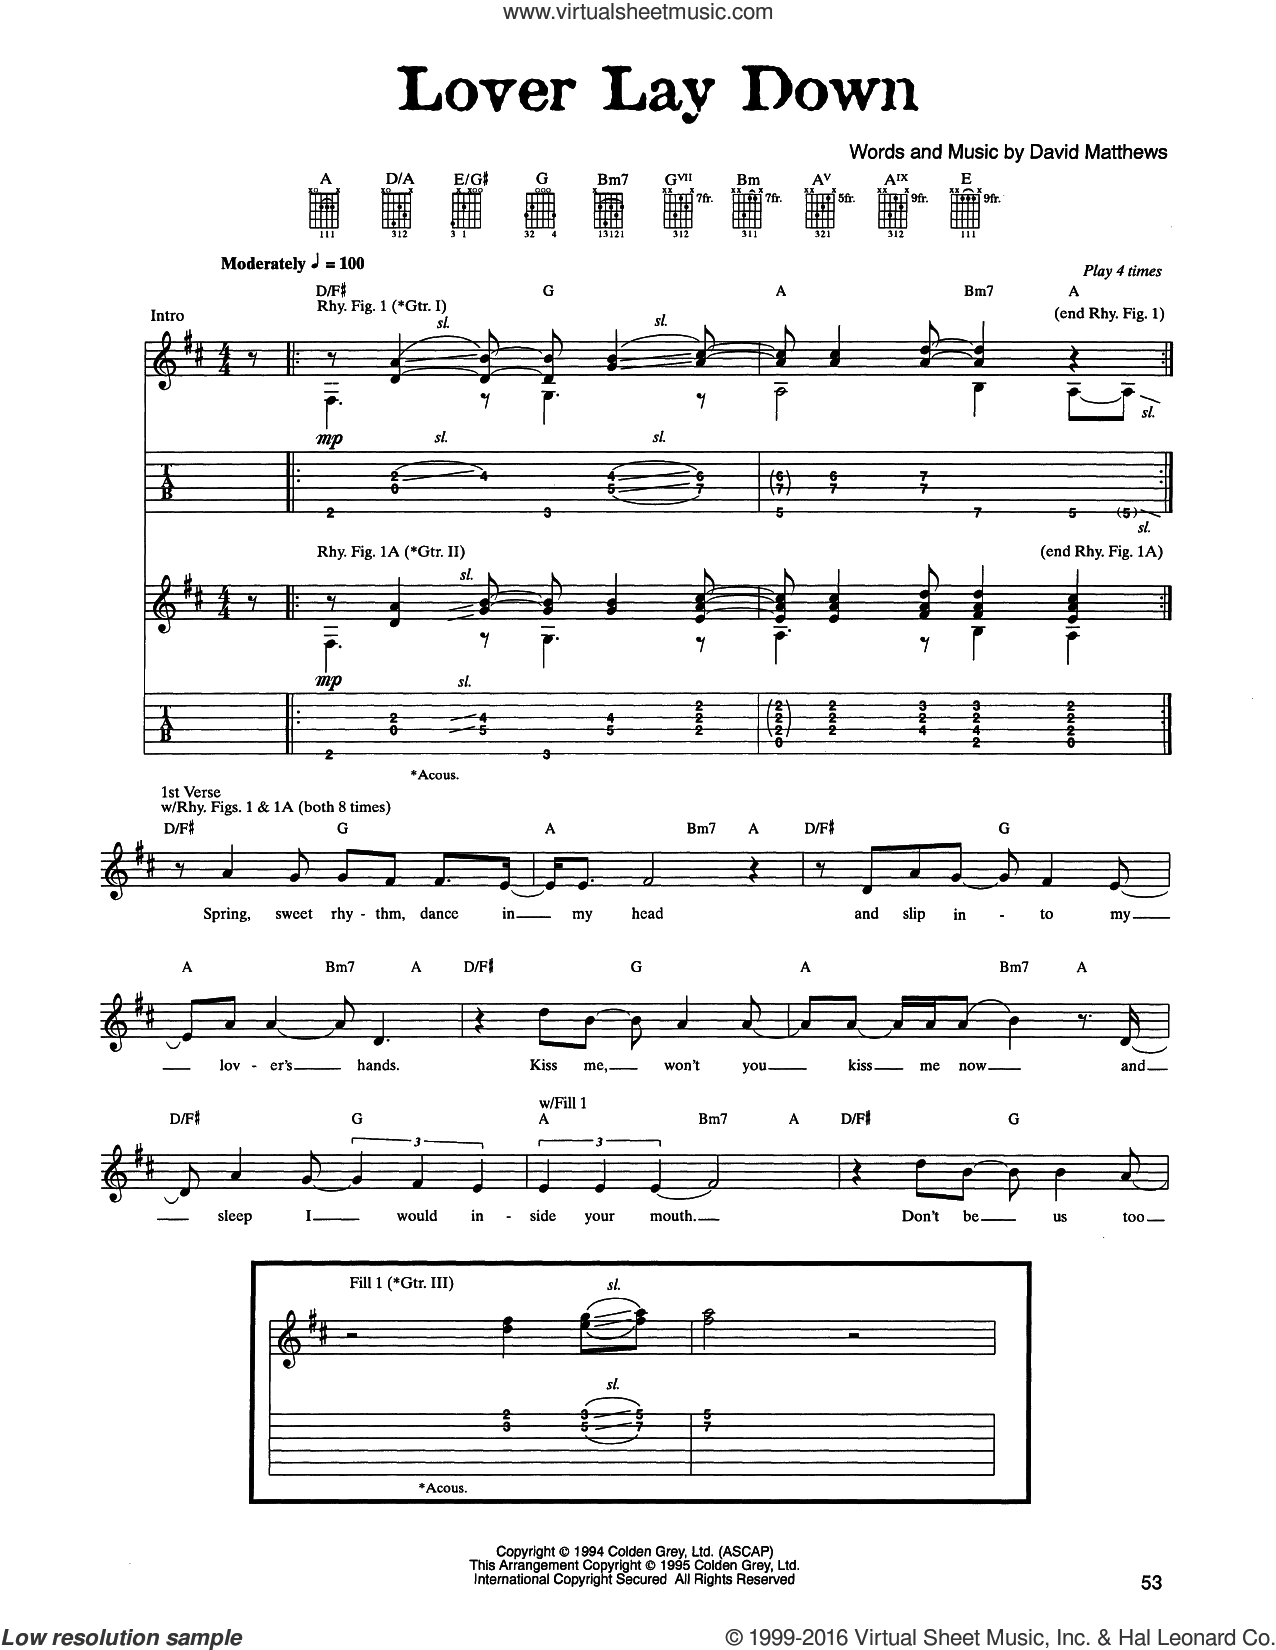 Lover Lay Down sheet music for guitar (tablature) by Dave Matthews Band, intermediate